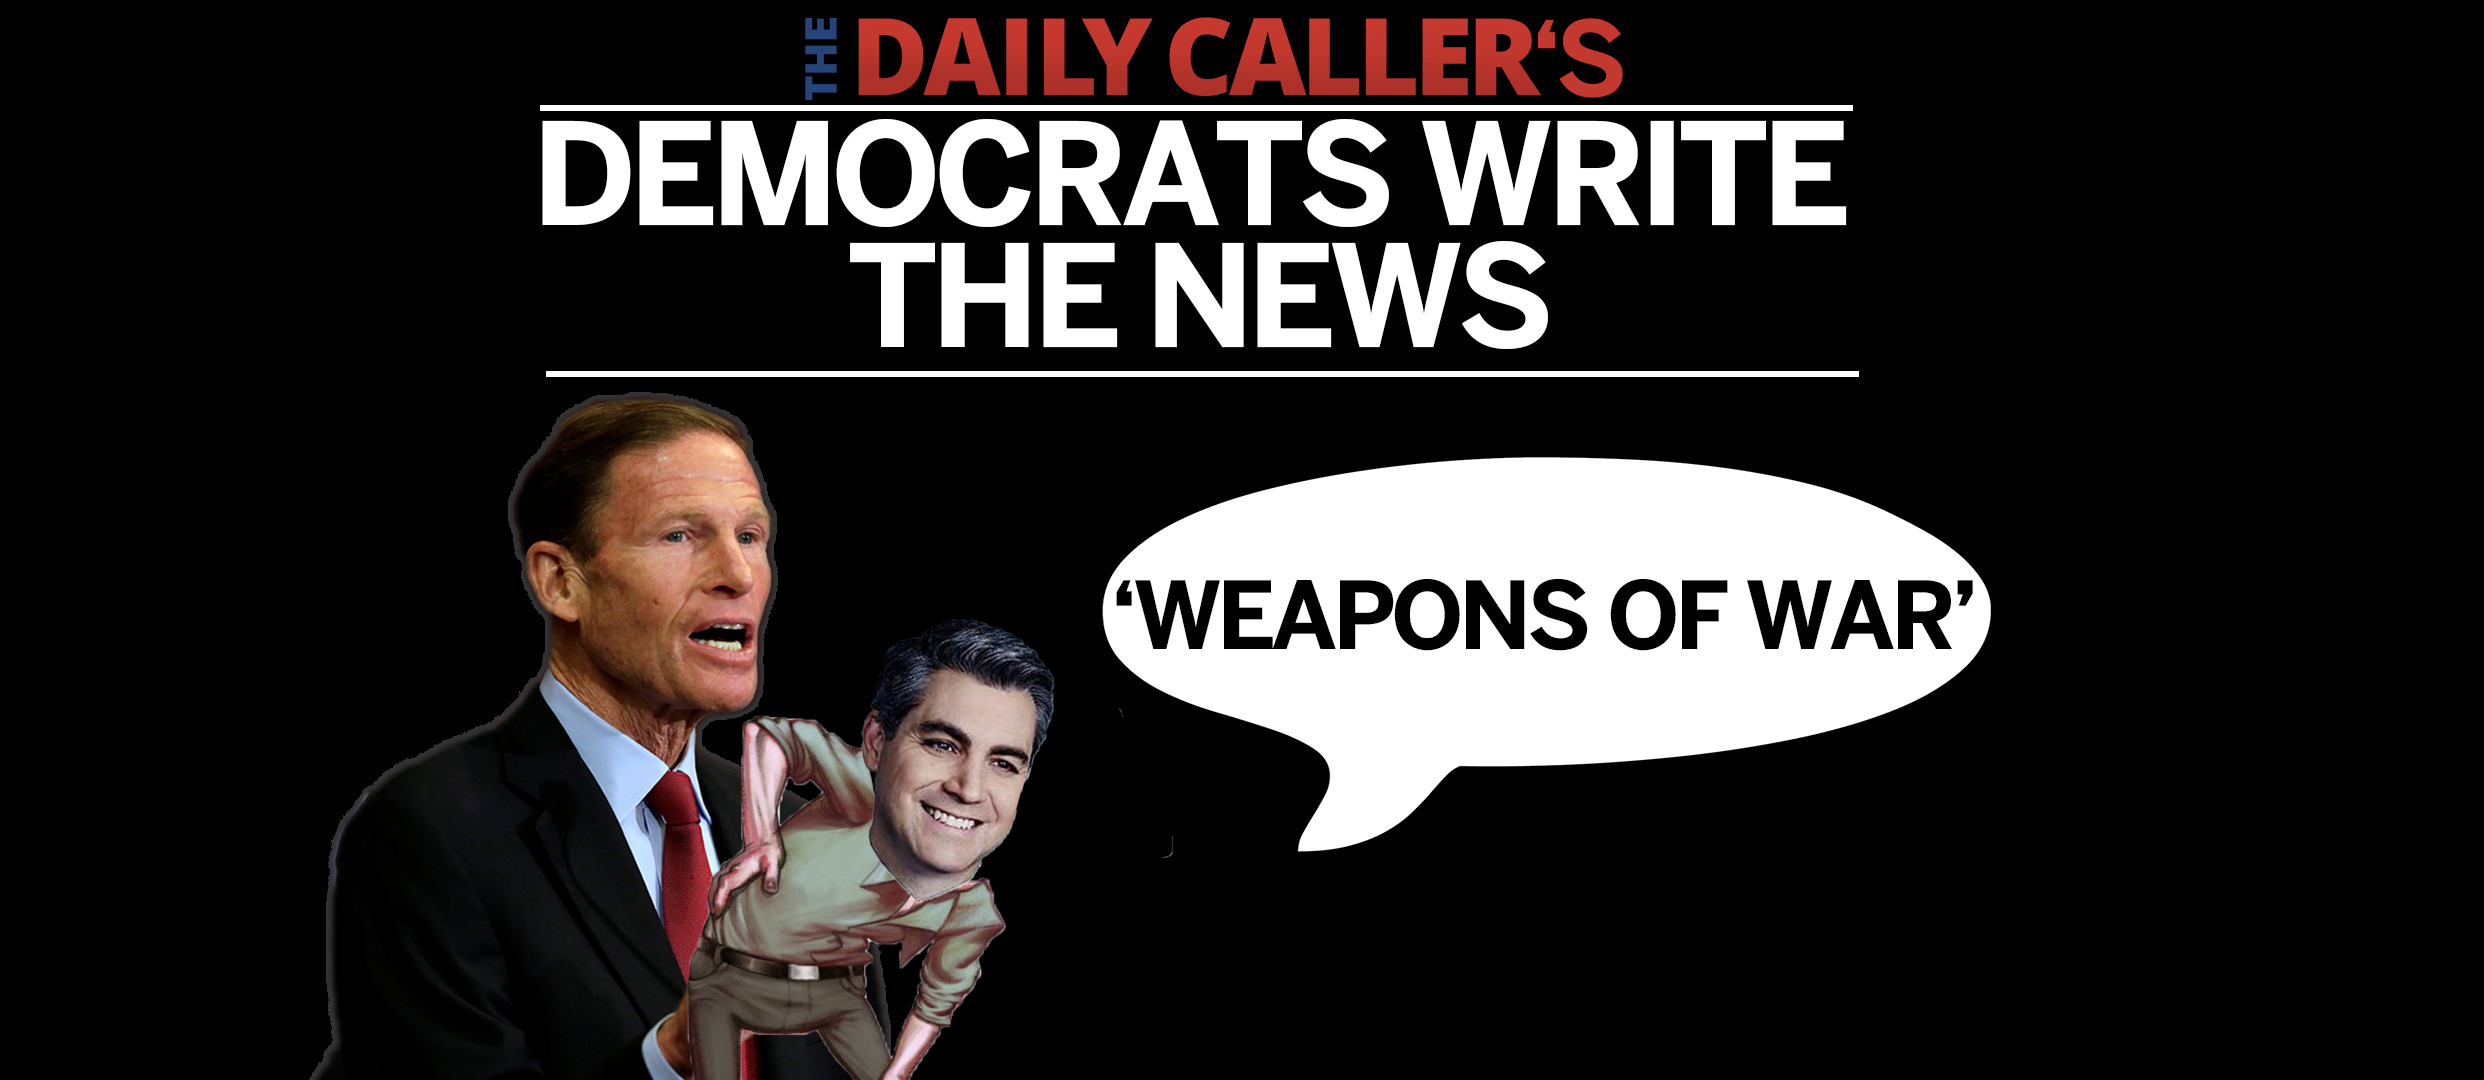 Democrats Write The News: Weapons Of War (The Daily Caller)